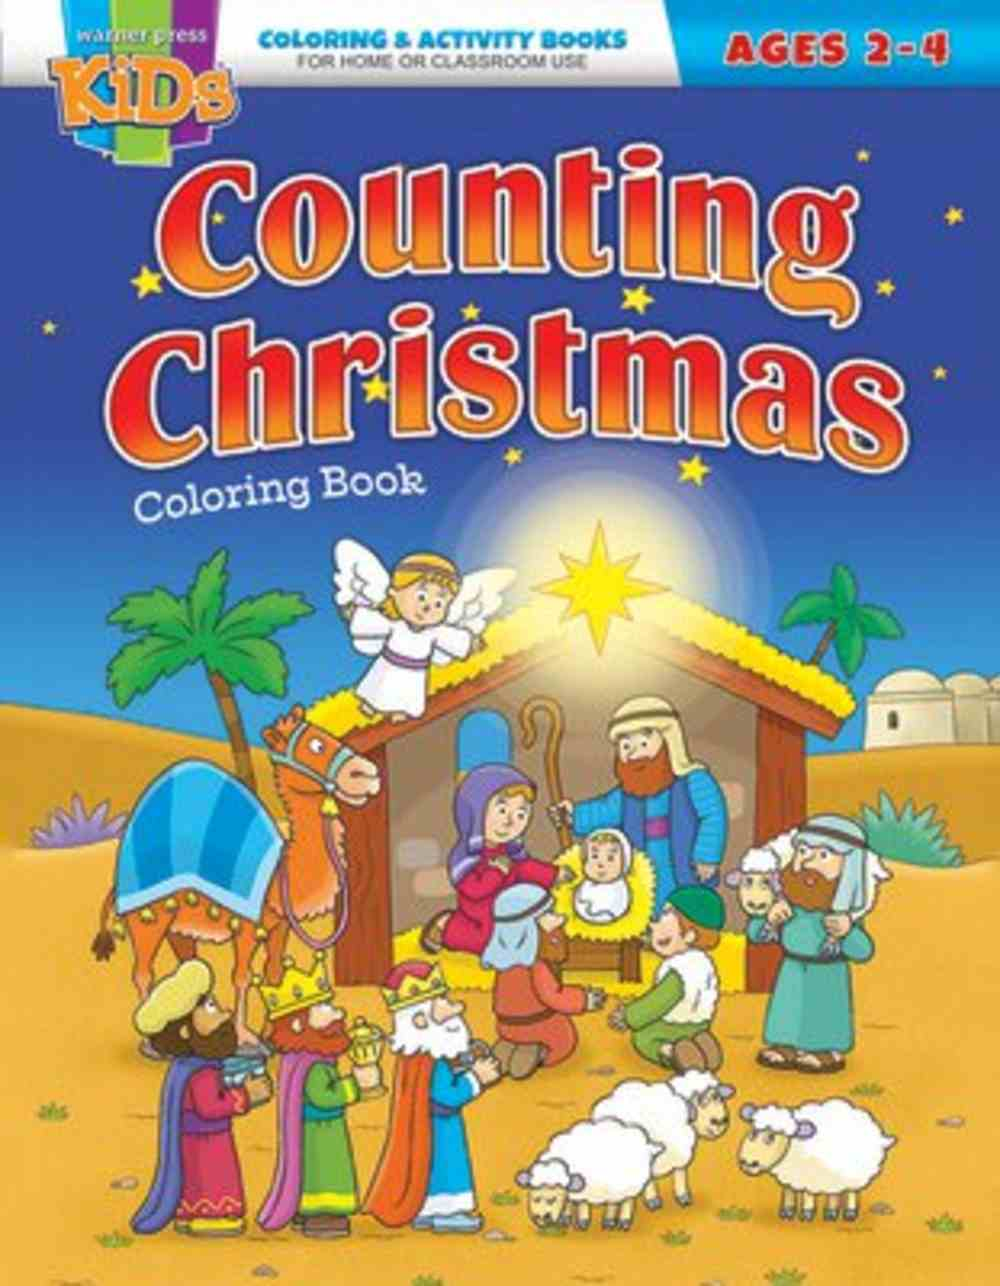 Counting Christmas (NIV, Ages 2-4 Reproducible) (Warner Press Colouring/activity Under 5's Series) Paperback